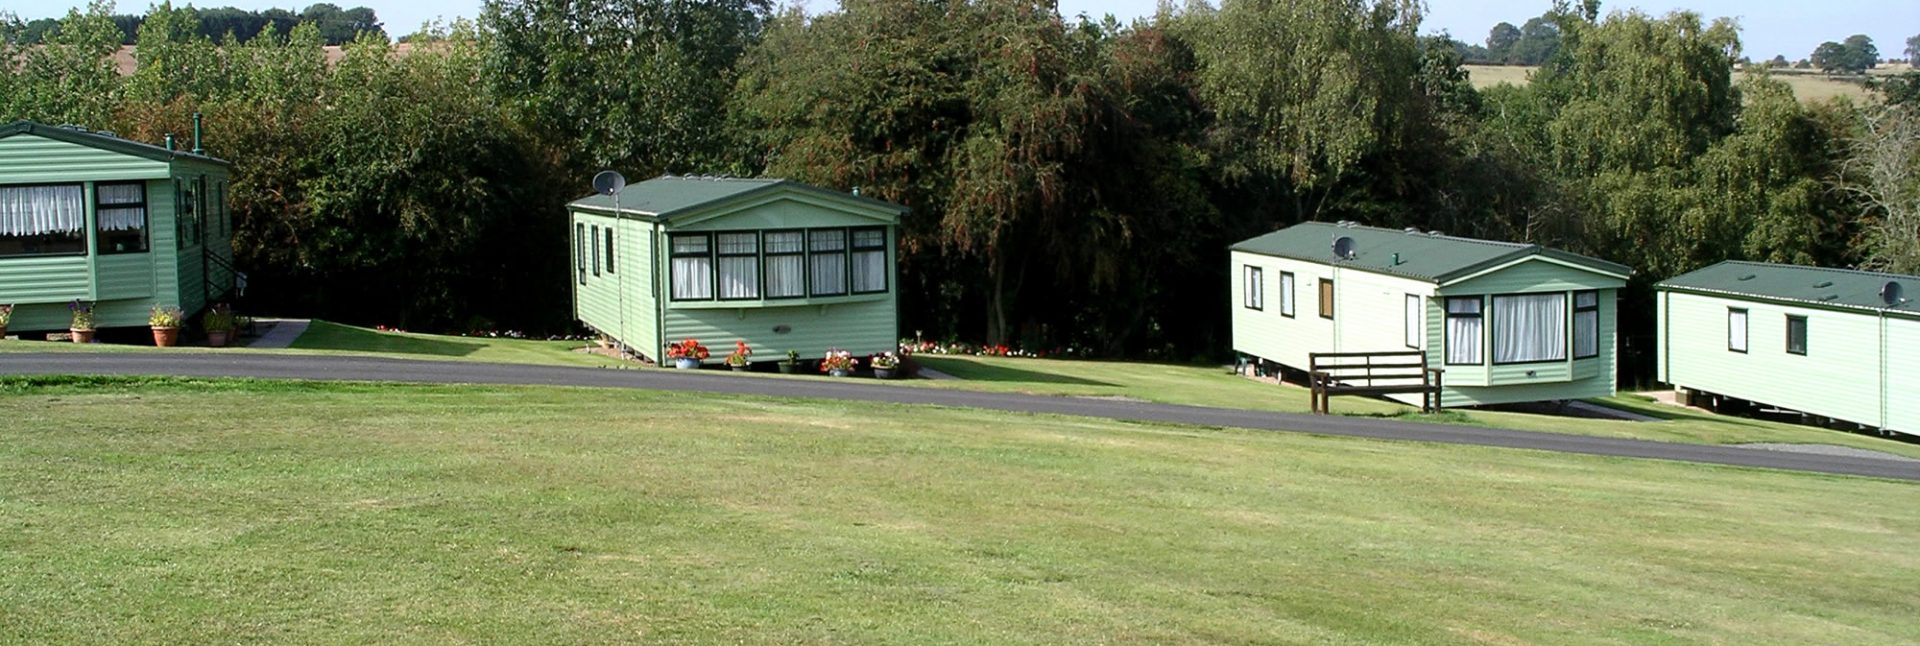 Static Caravans and Holiday Homes For Sale Bromyard, Herefordshire